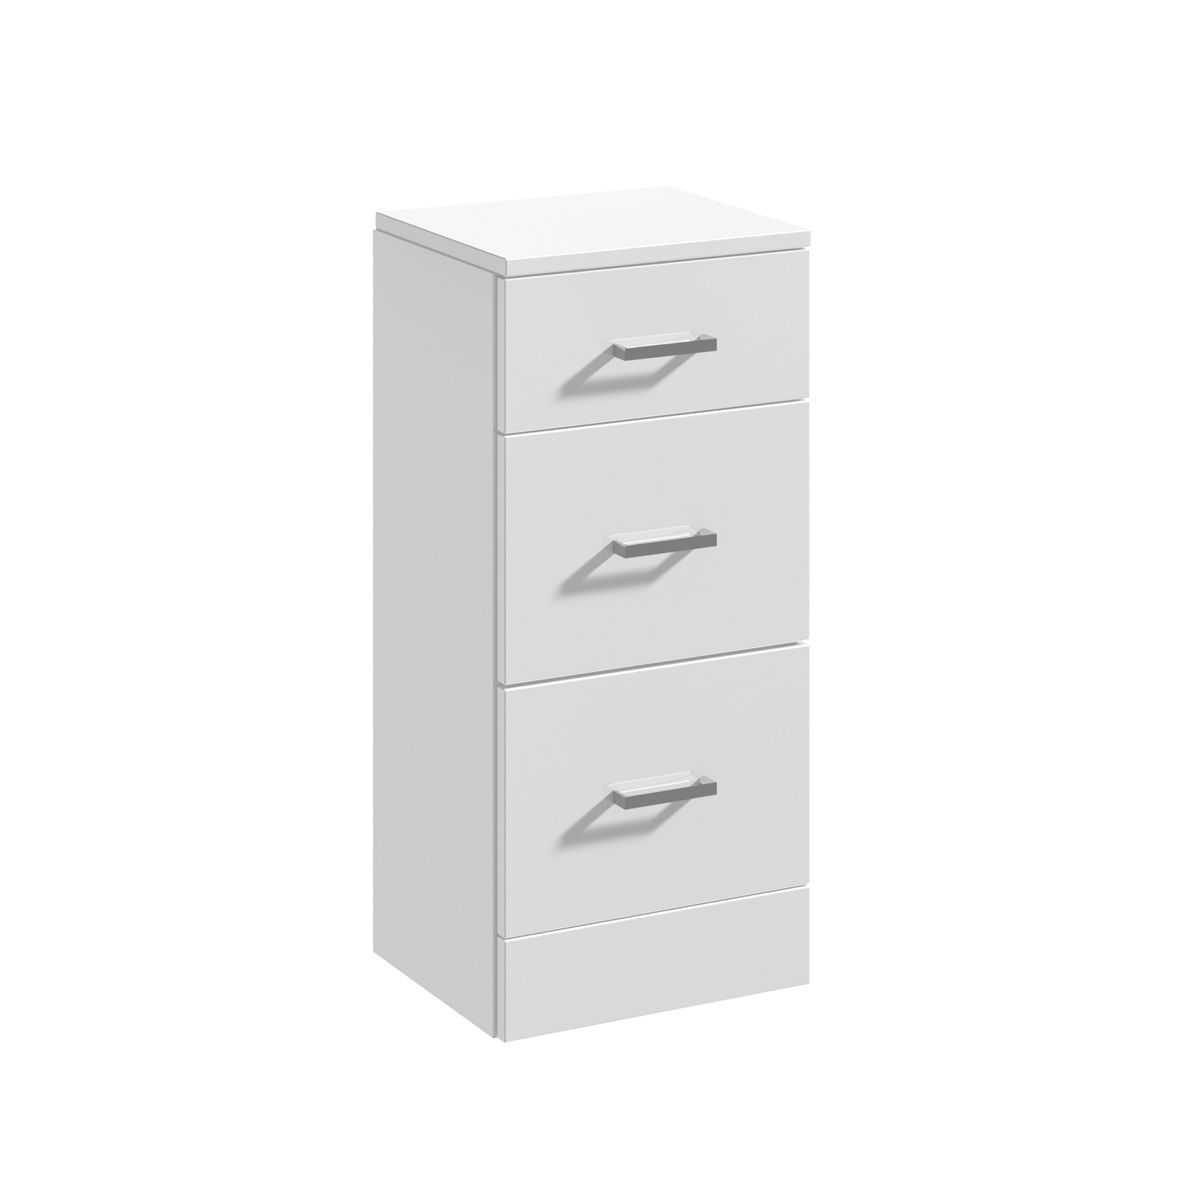 Nuie High Gloss White 3 Drawer Unit 350 x 330mm